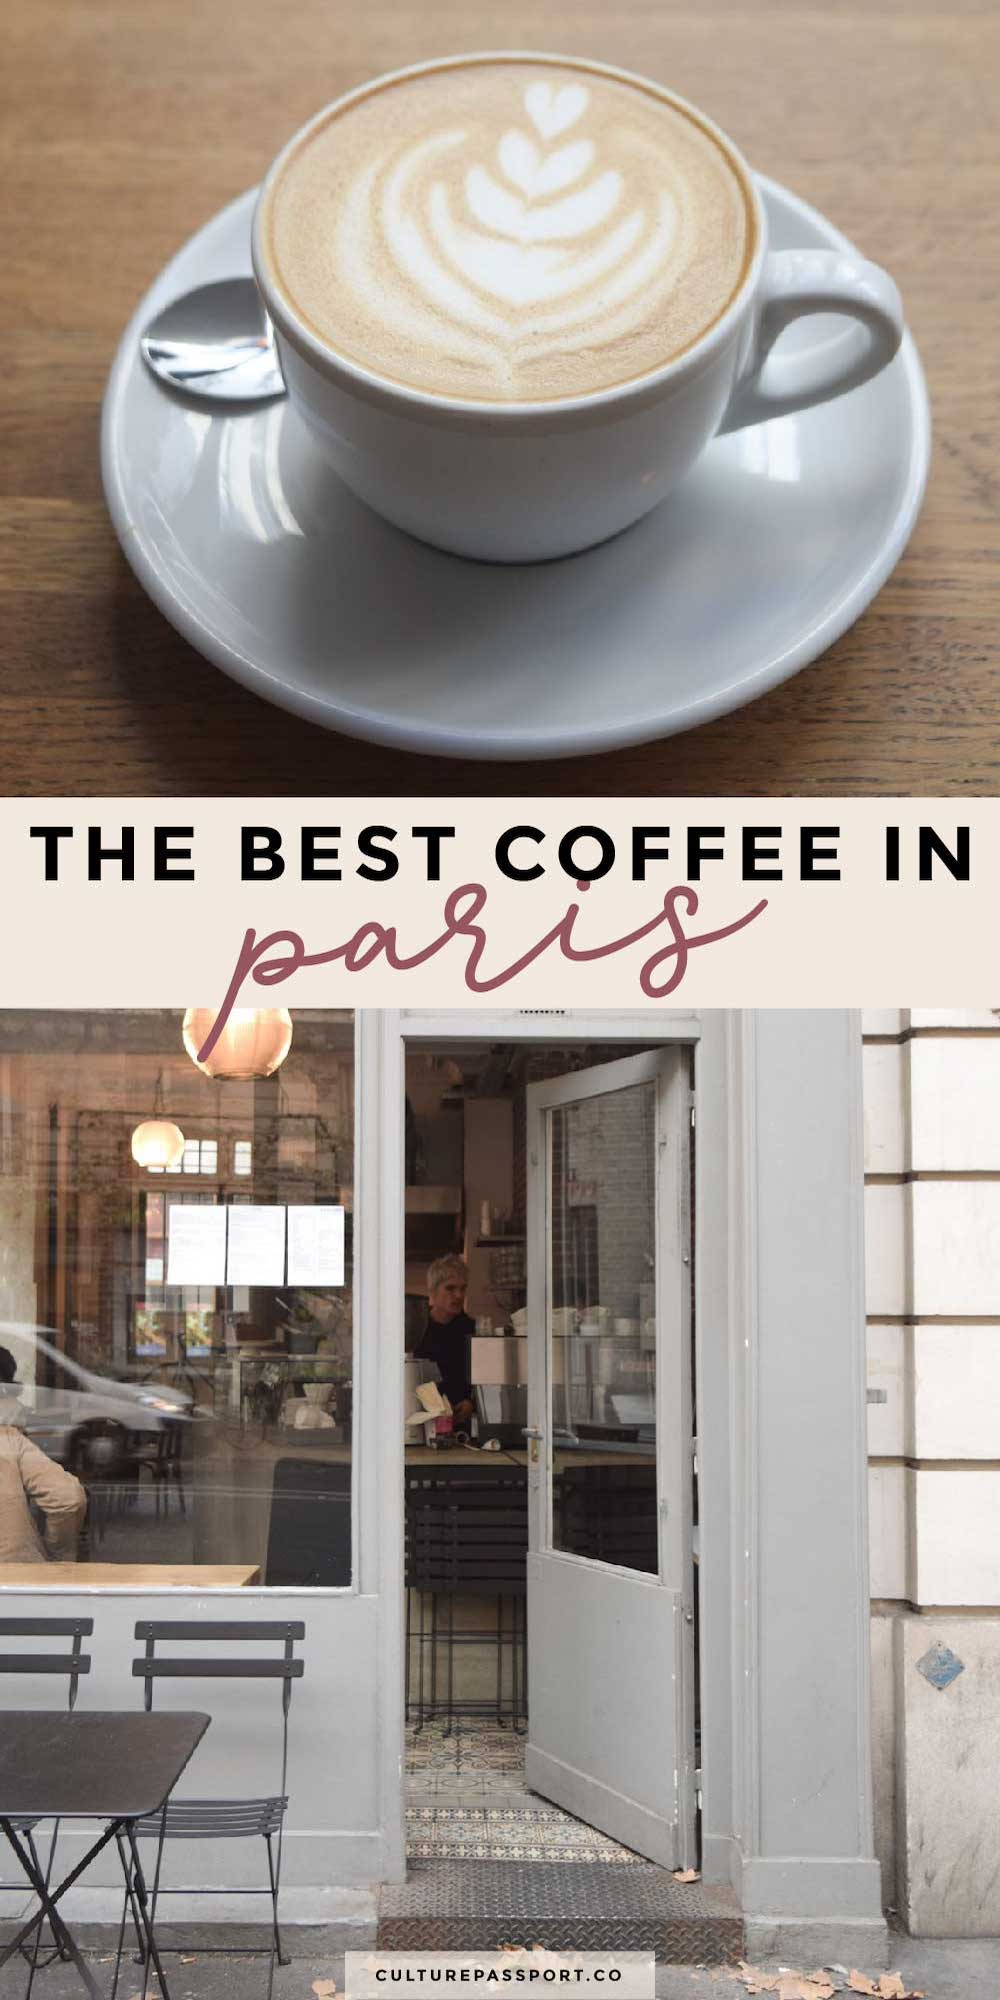 Where To Find the Best Coffee in Paris #coffeelovers #paristips #pariscoffee